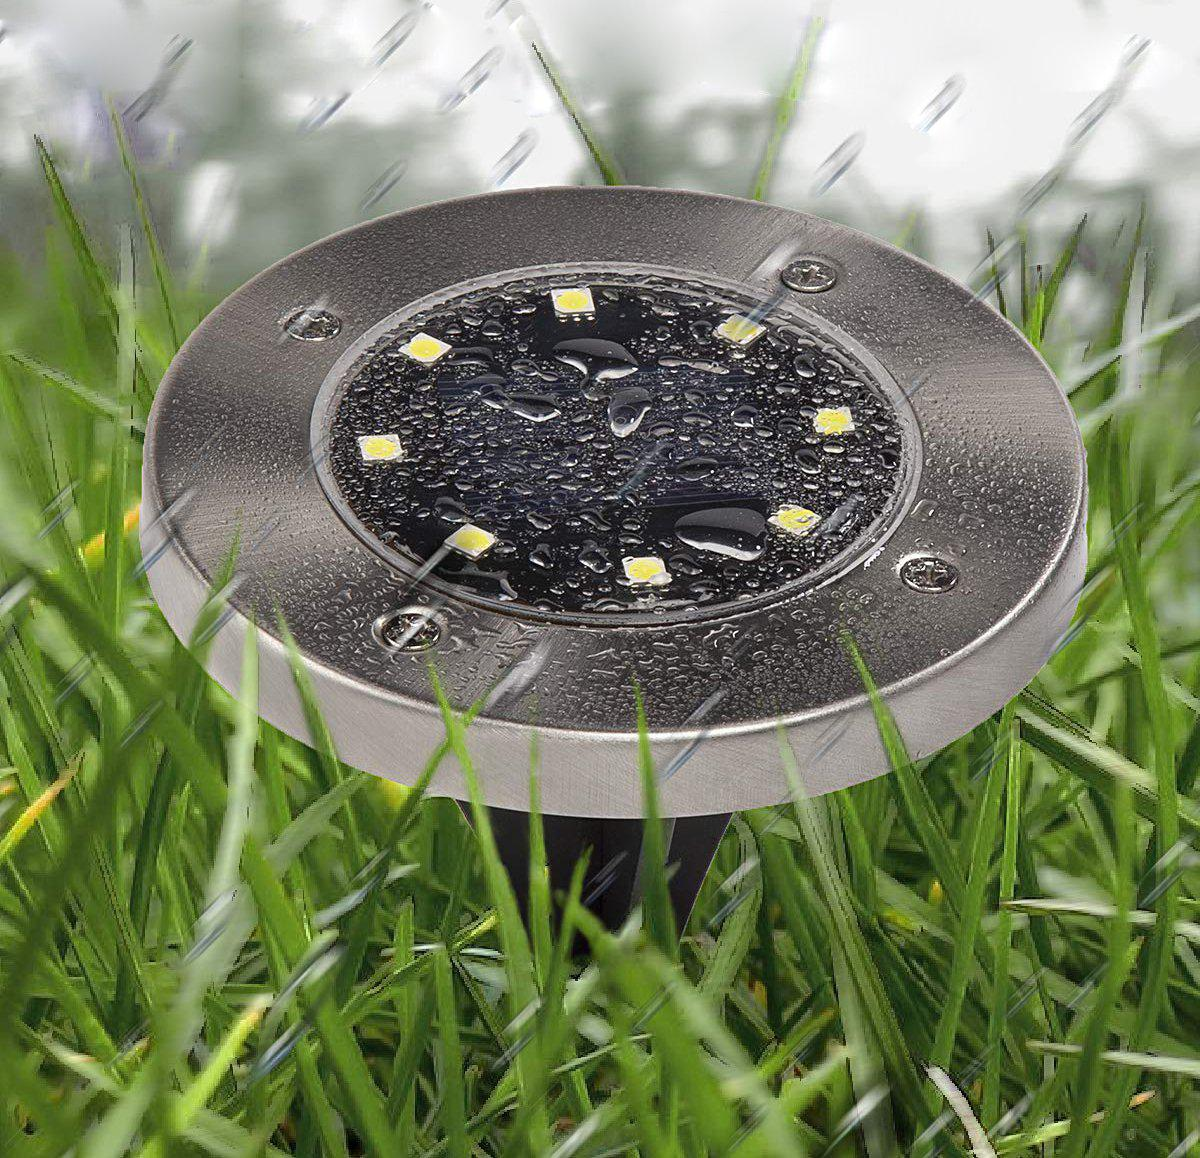 2 Pcs Solar-Powered LED Ground Light